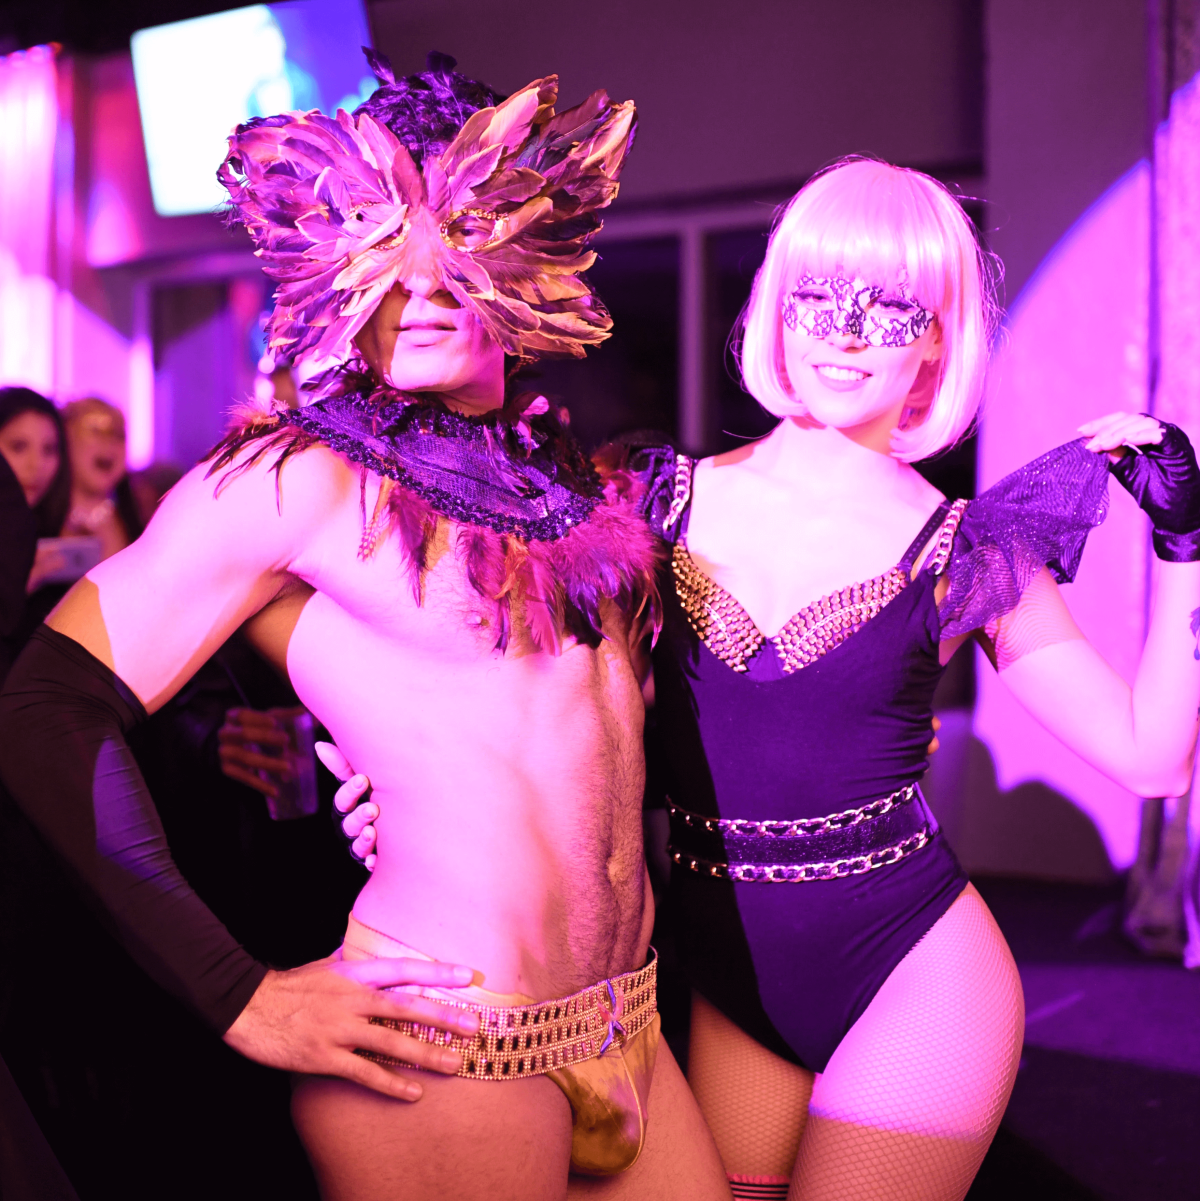 Unidentified couple at Heart of Fashion Masquerade Ball